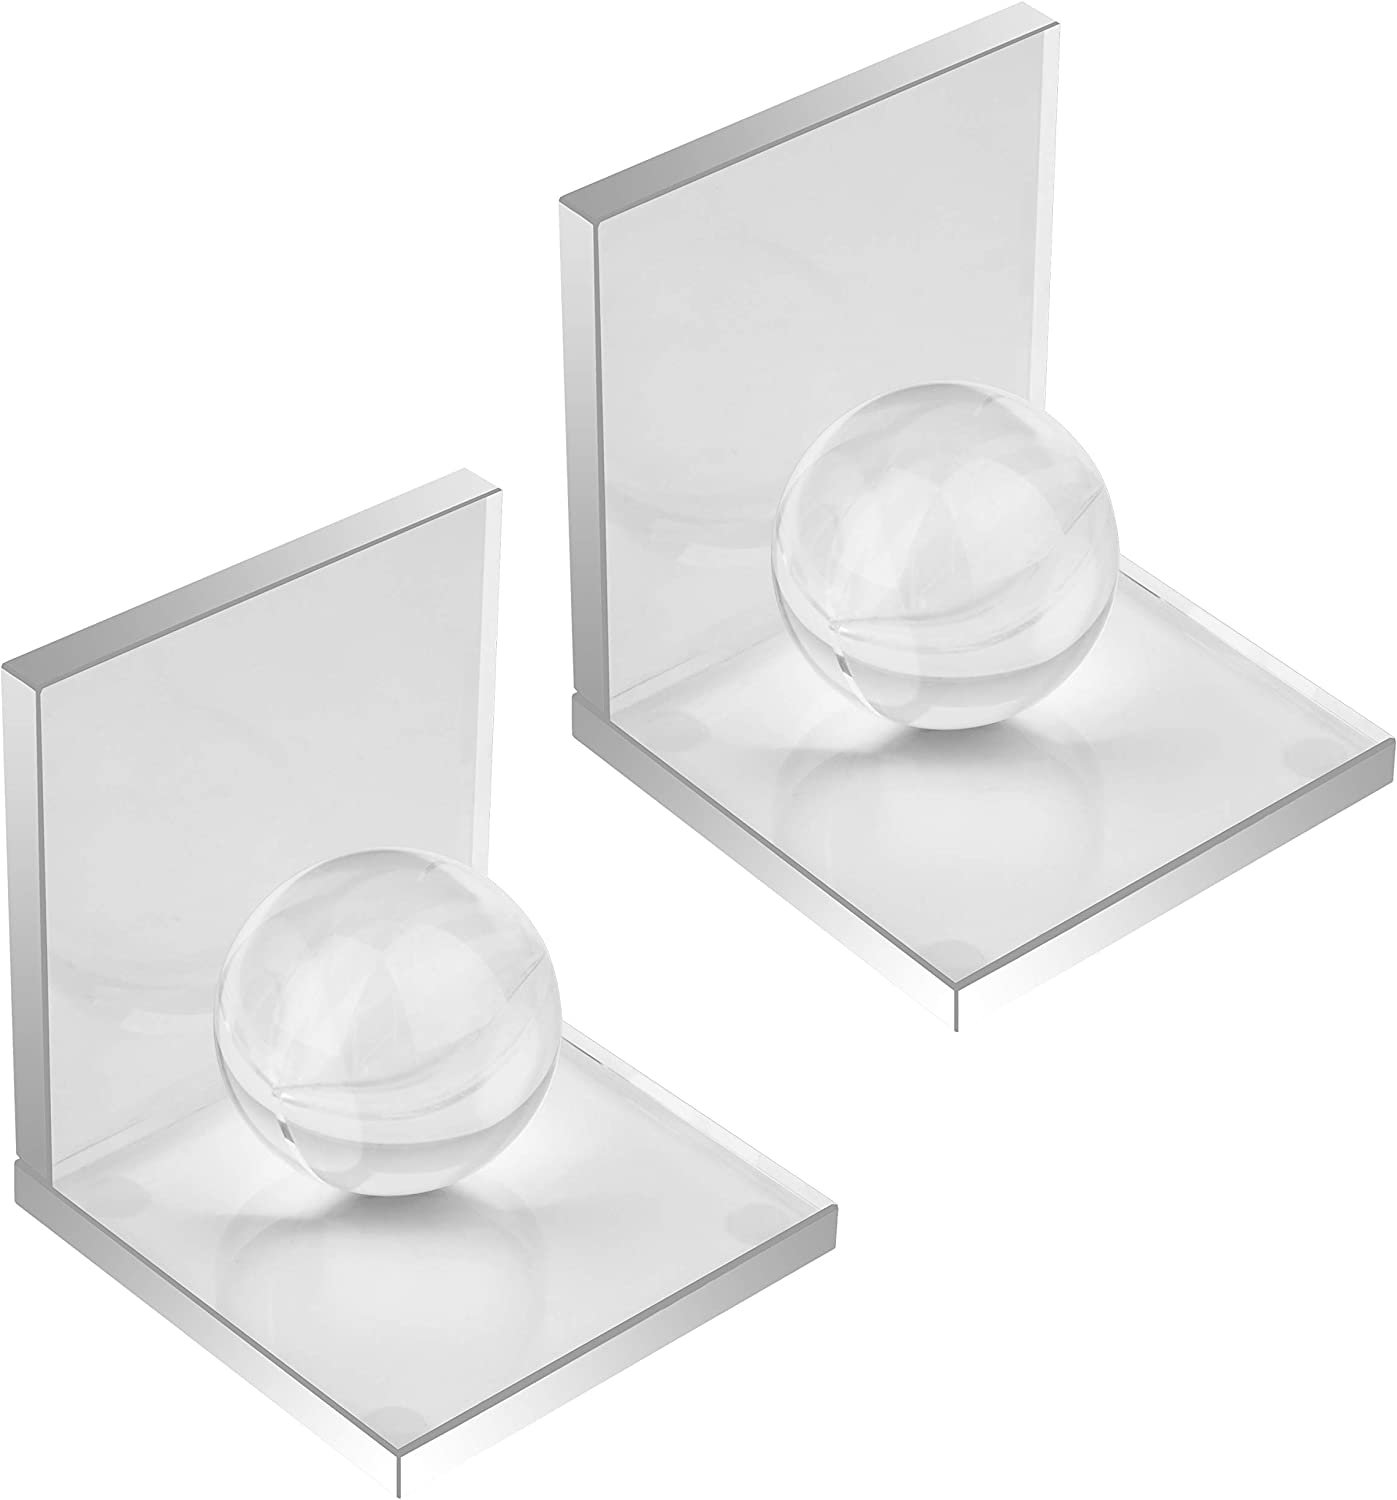 MerryNine Innovative Crystal Clear Bookends with Crystal Ball, 1 Pair L Shape Non Skid Sturdy Crystal Bookends for Heavy Books, Bookshelf, Office, School Library, Decorative Ornaments, A